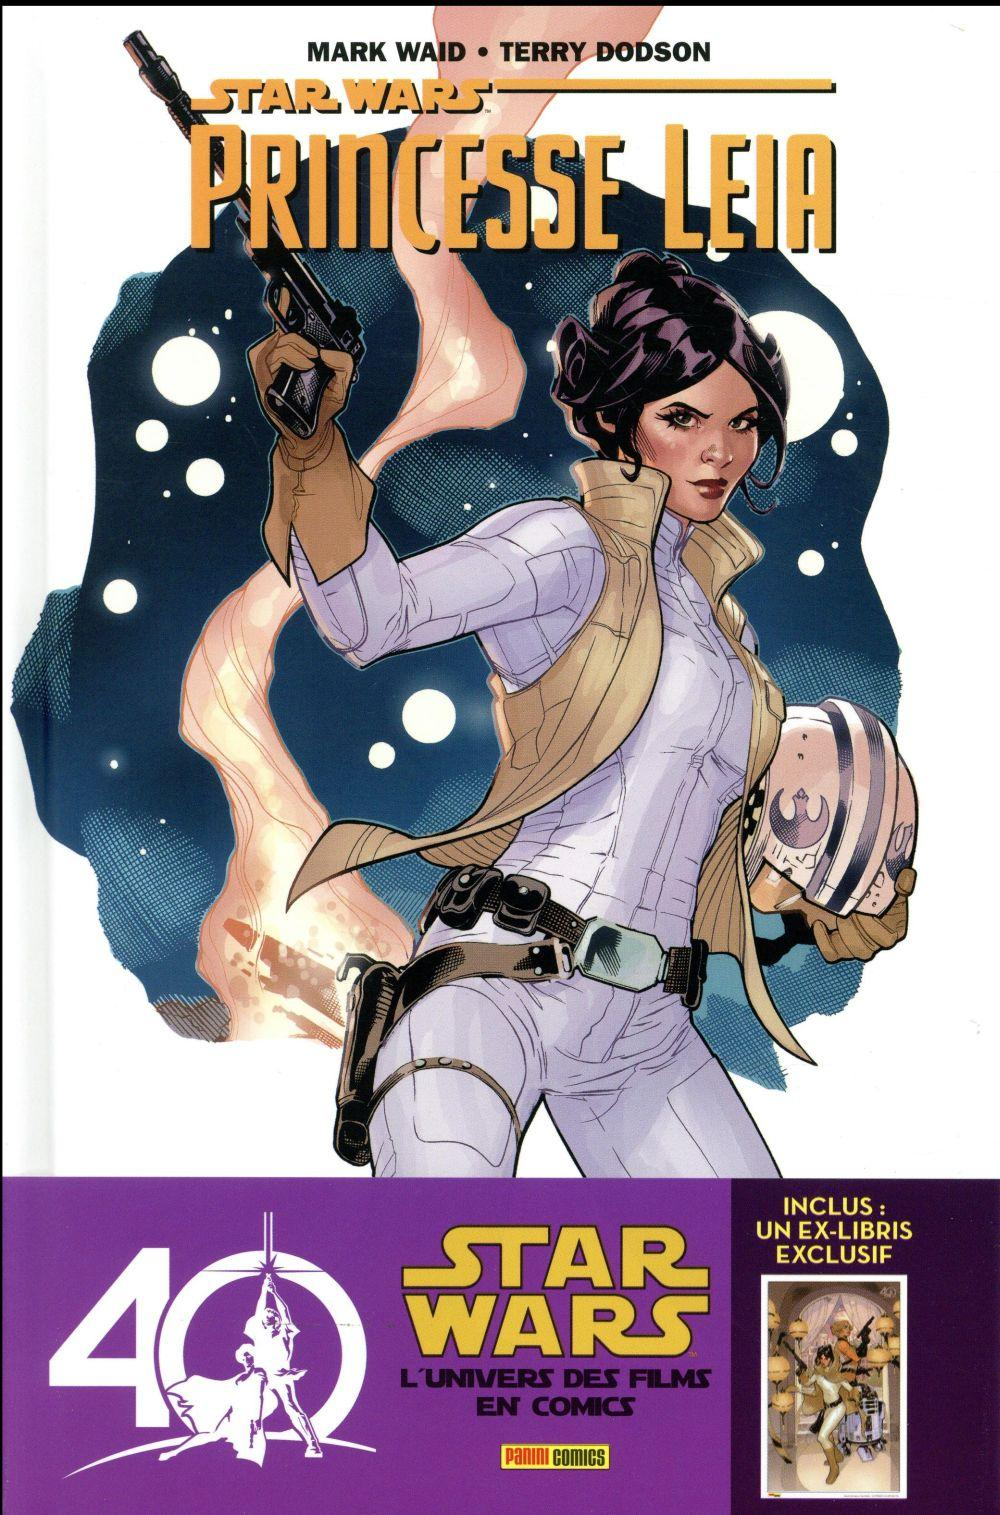 Vente Livre :                                    Star Wars - Princesse Leia T.1                                      - Mark Waid  - Terry Dodson